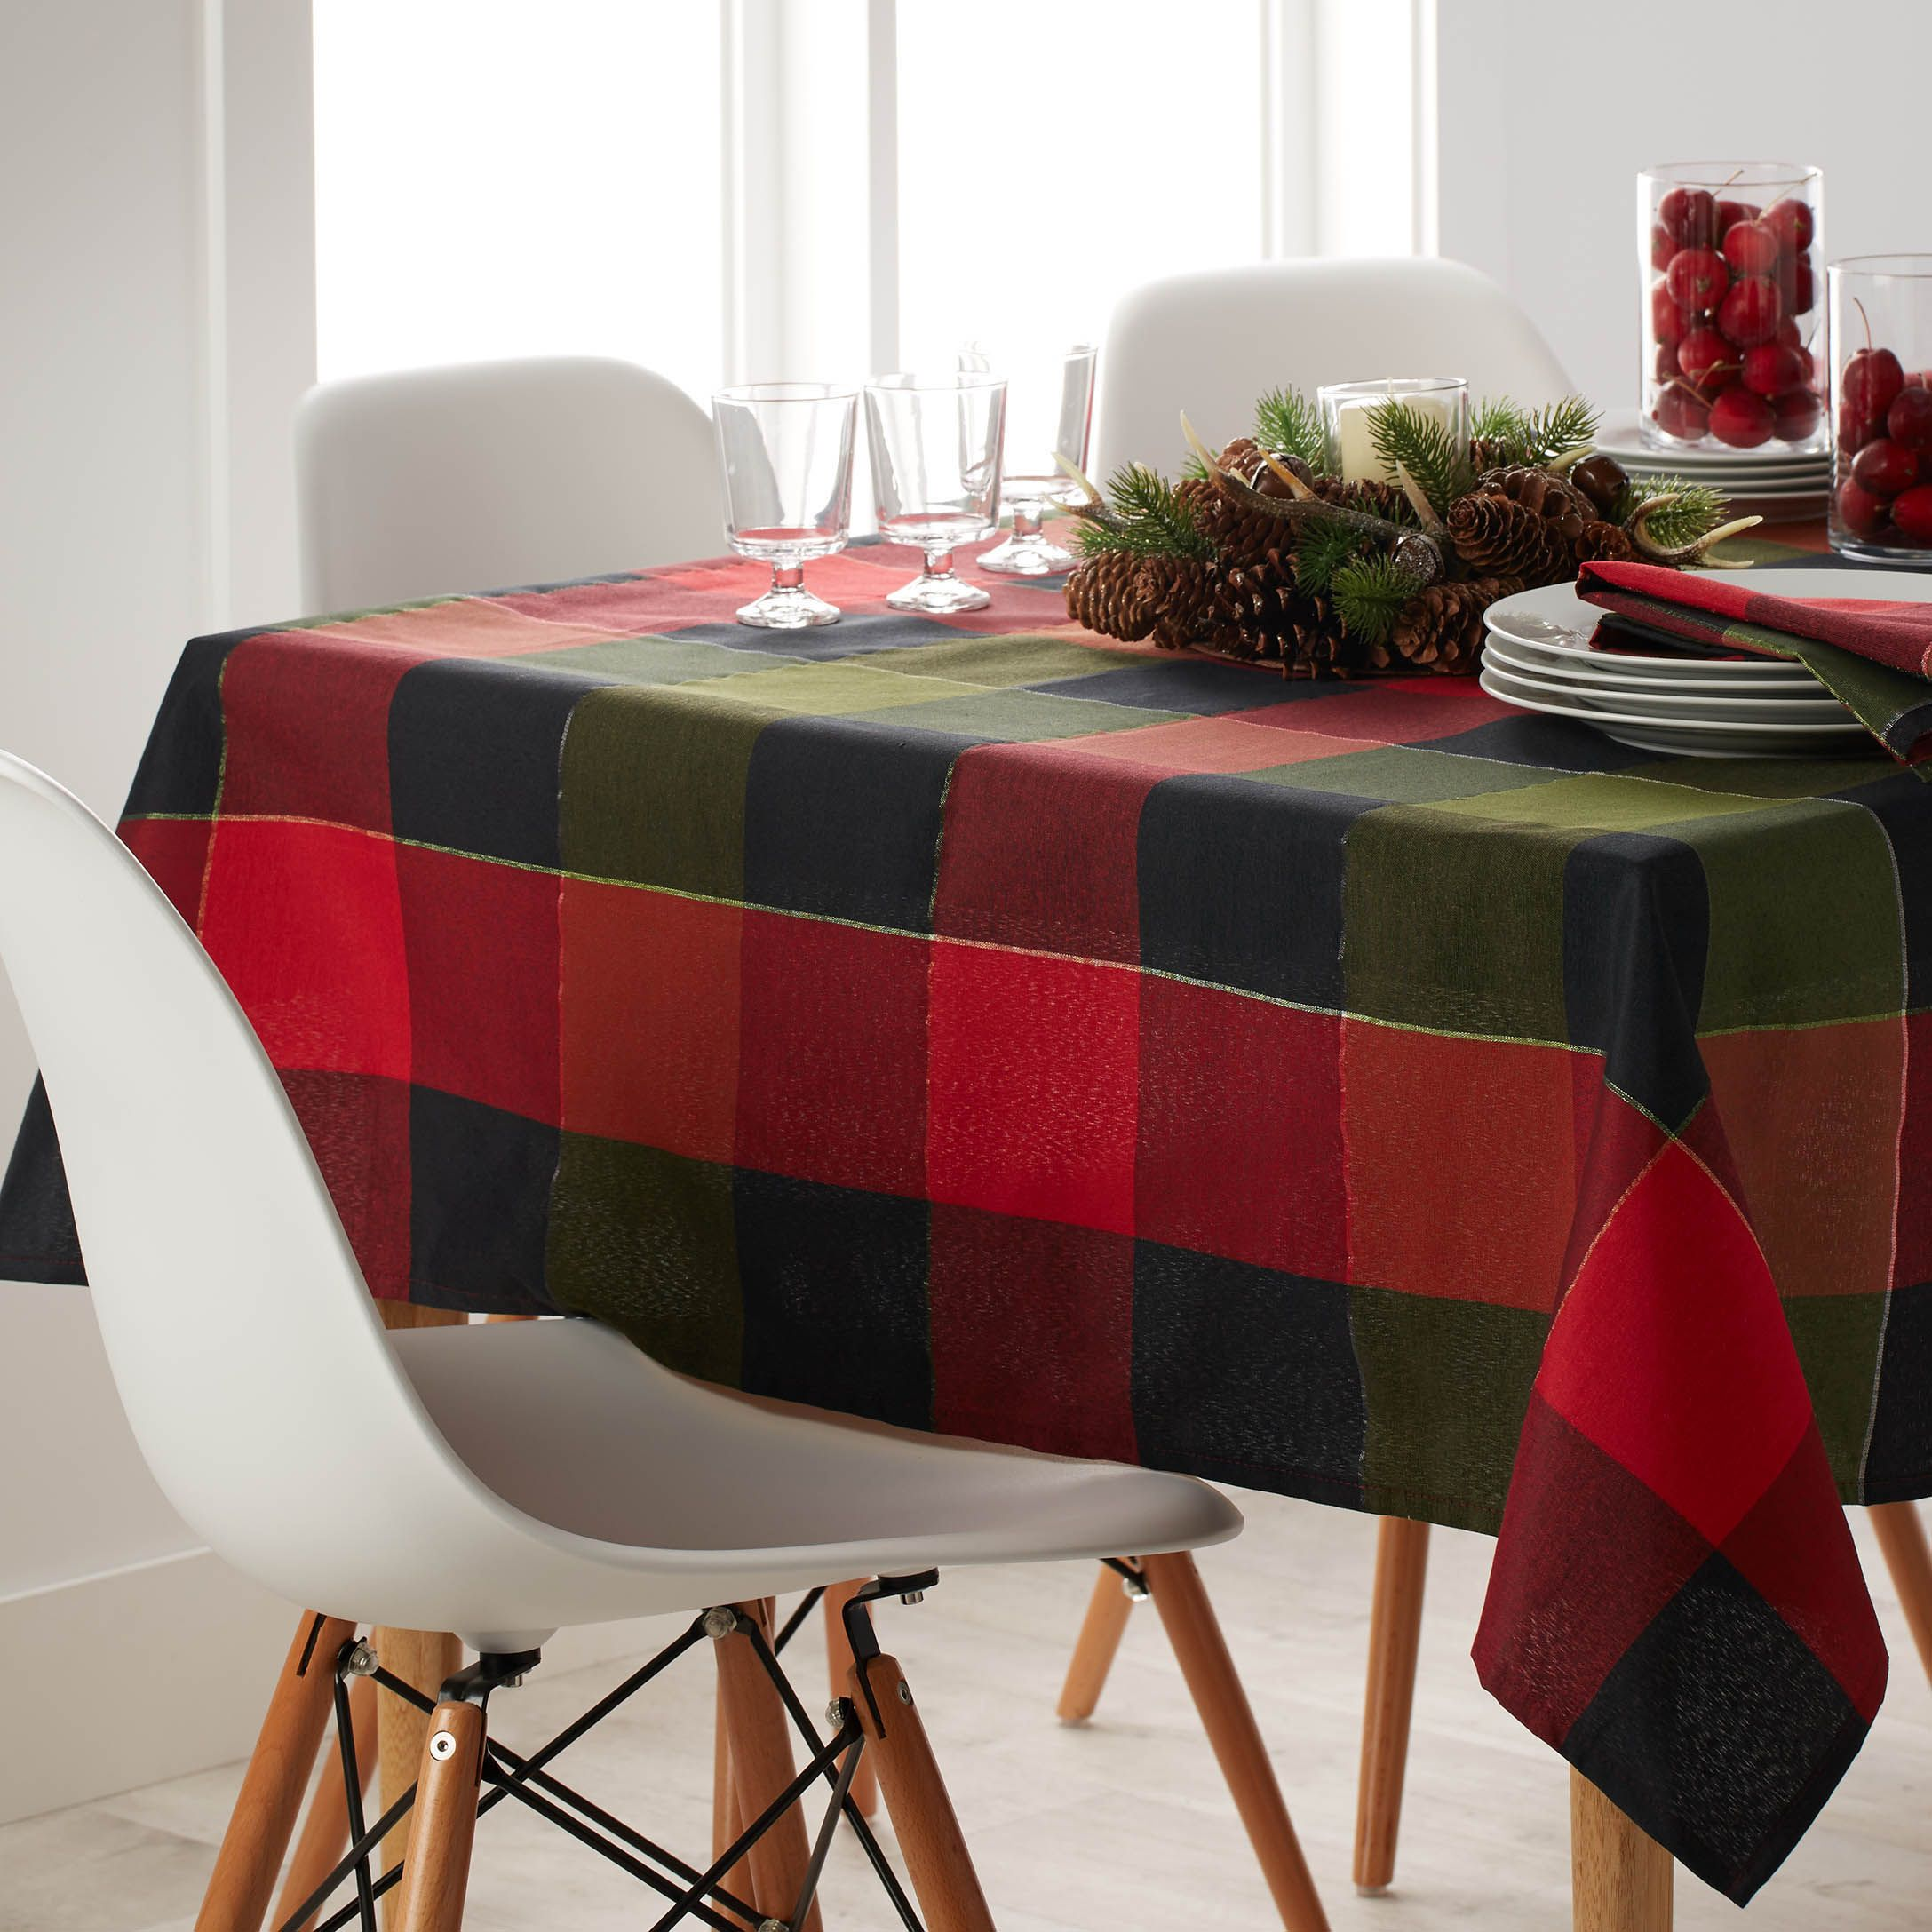 Explore Checkered Tablecloth And More!